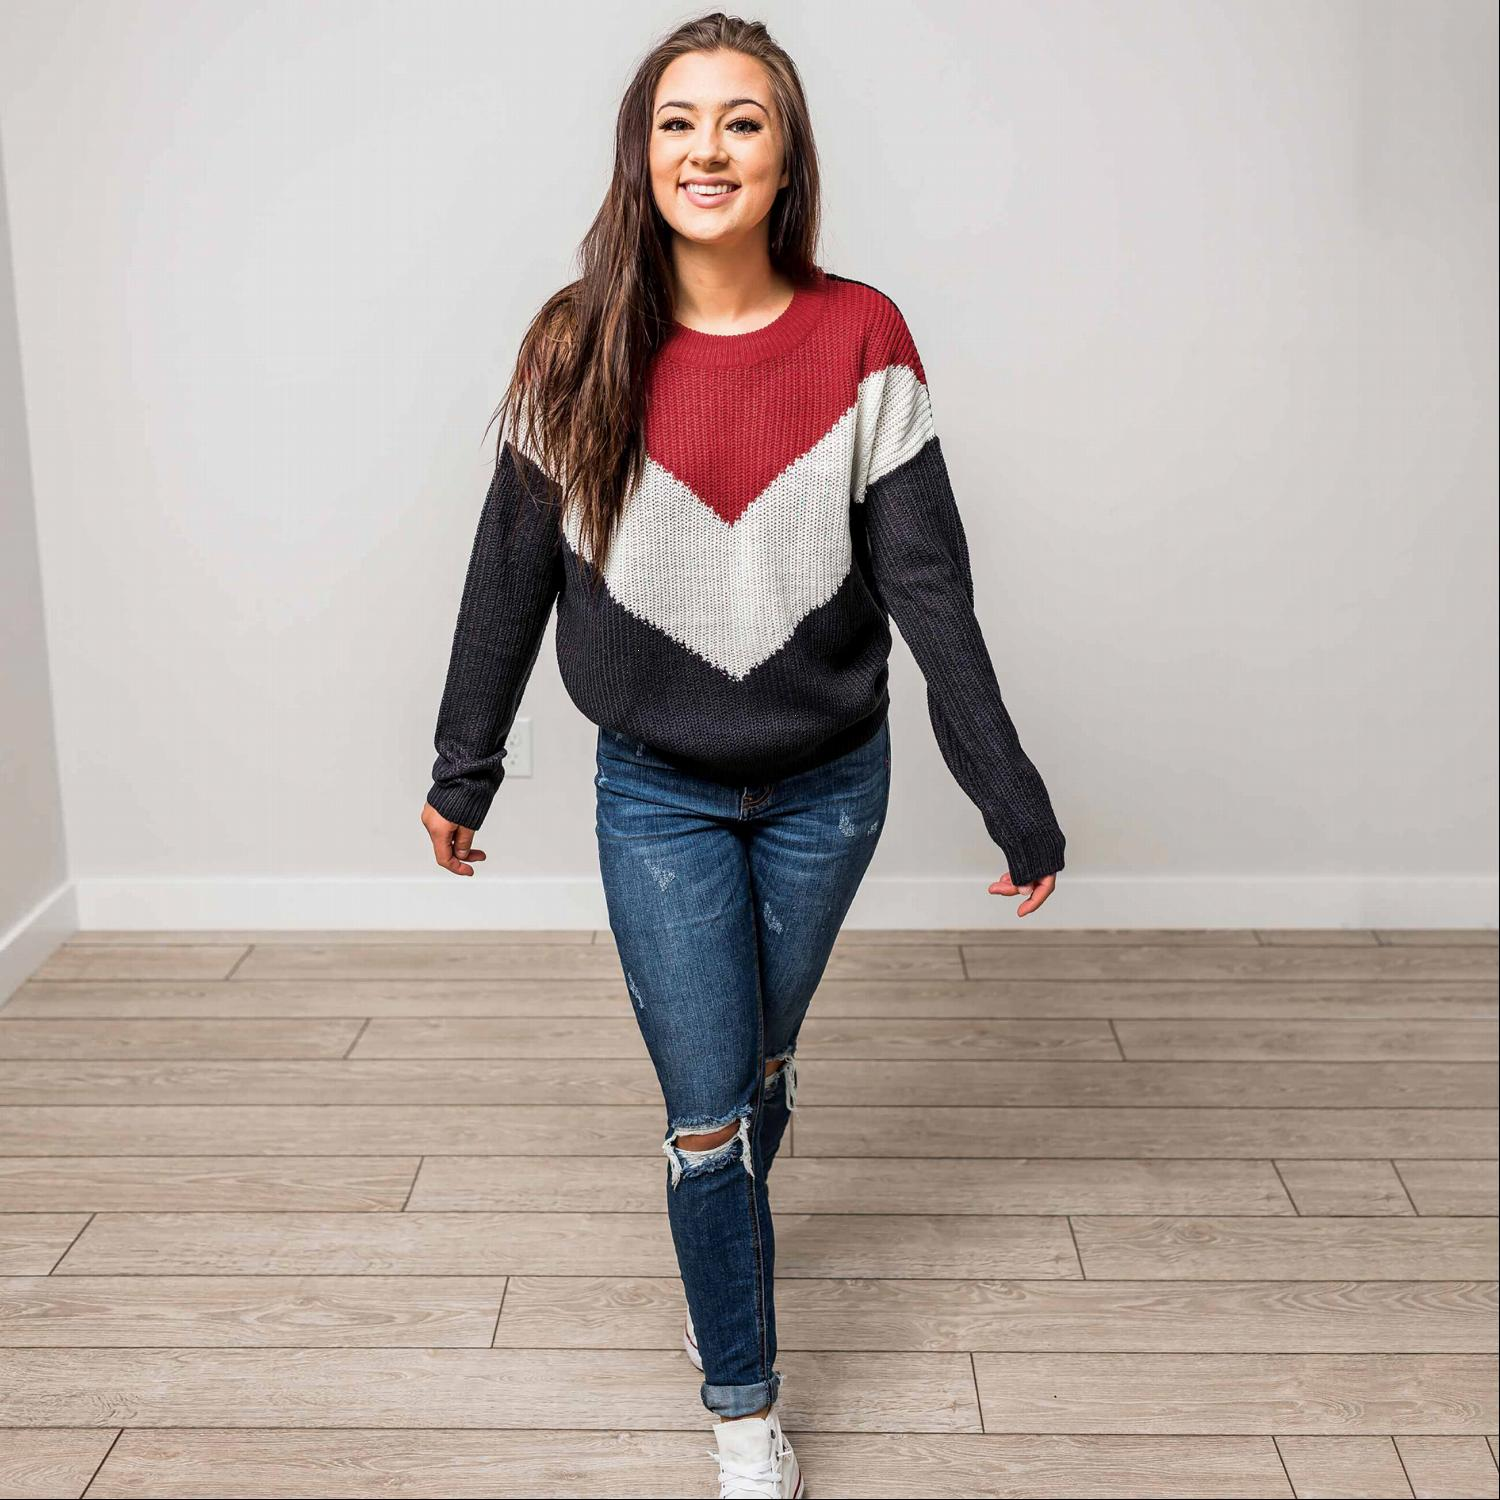 Rust ROUND NECK LONG SLEEVE CHEVRON COLORBLOCK SWEATER